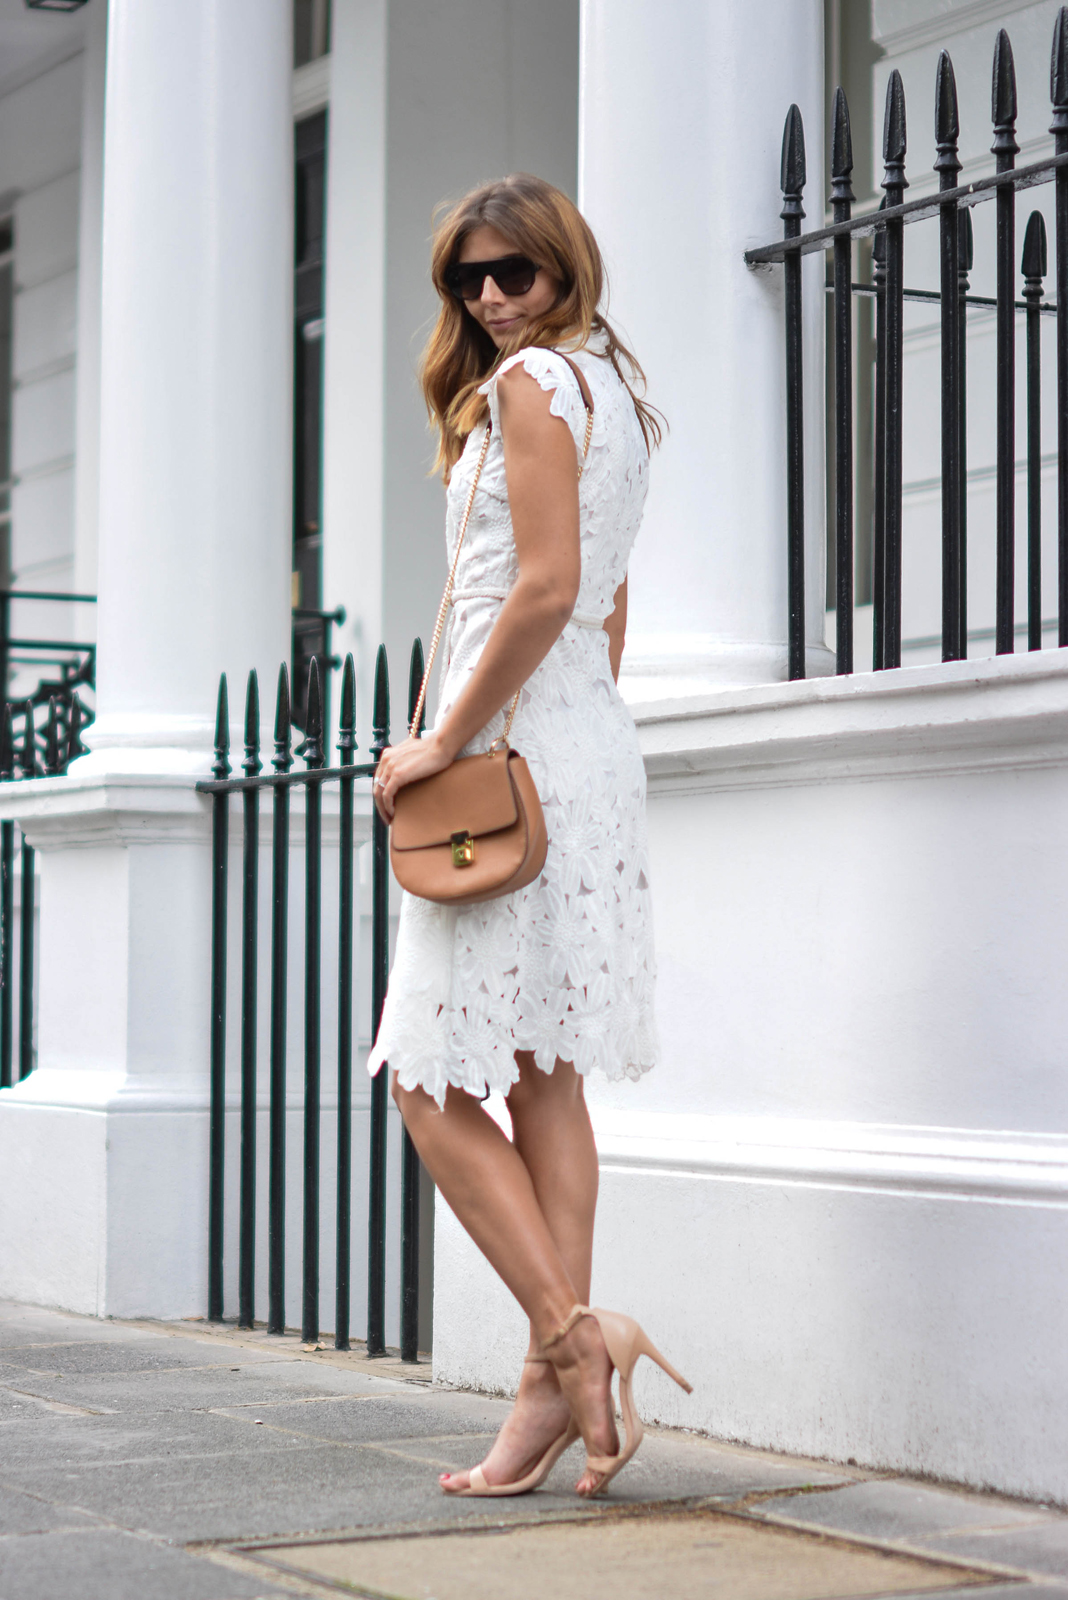 EJSTYLE wears white lace dress, nude barely there sandals, tan shoulder bag, wedding guest outfit, bridal shower outfit, OOTD